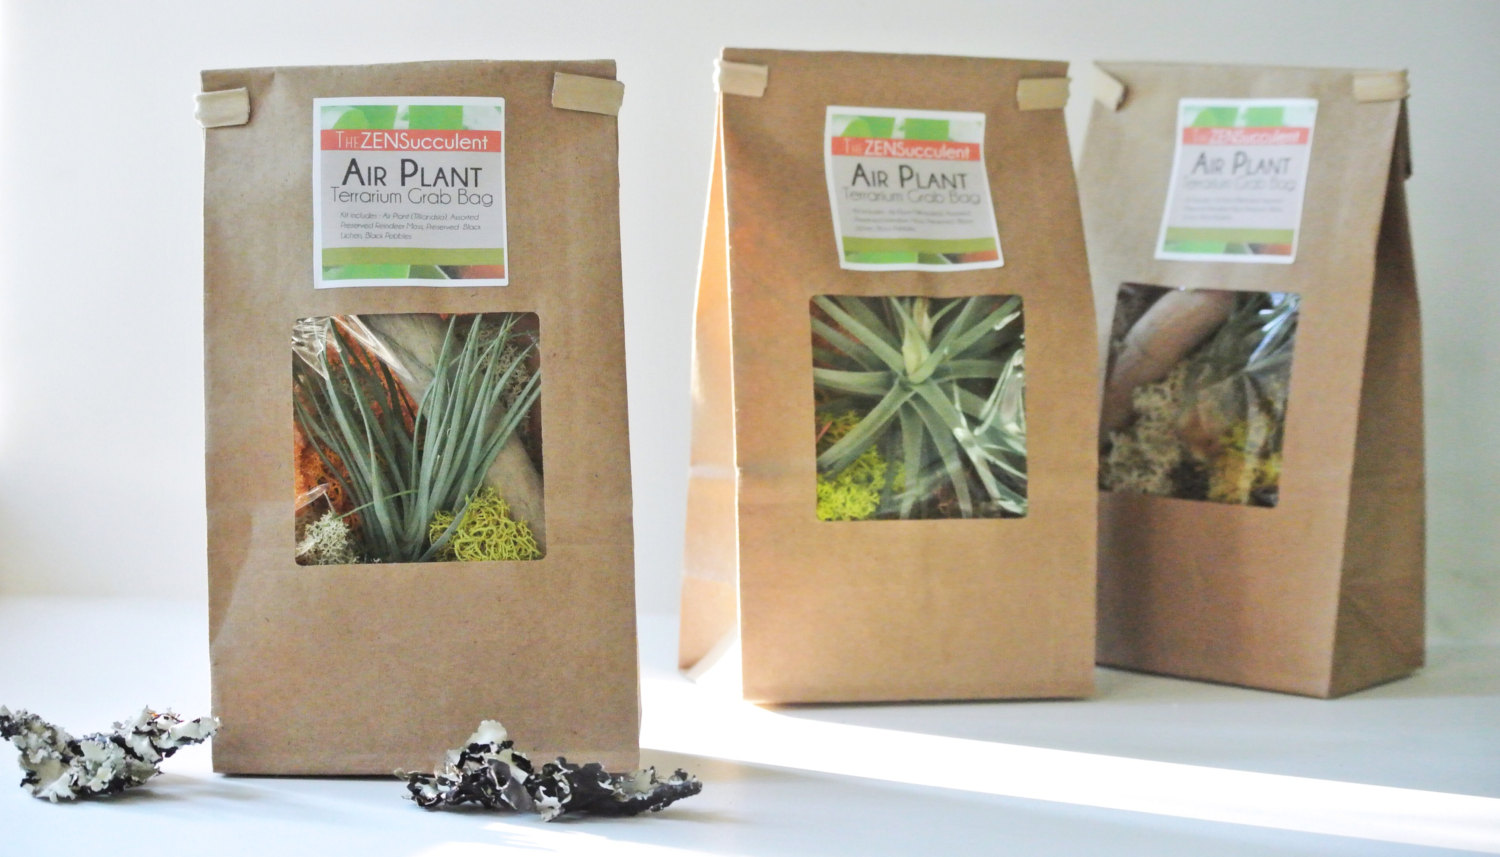 Air Plant Terrarium Air Plant Terrarium Grab Bag Air Plant Tillandsia Living Home